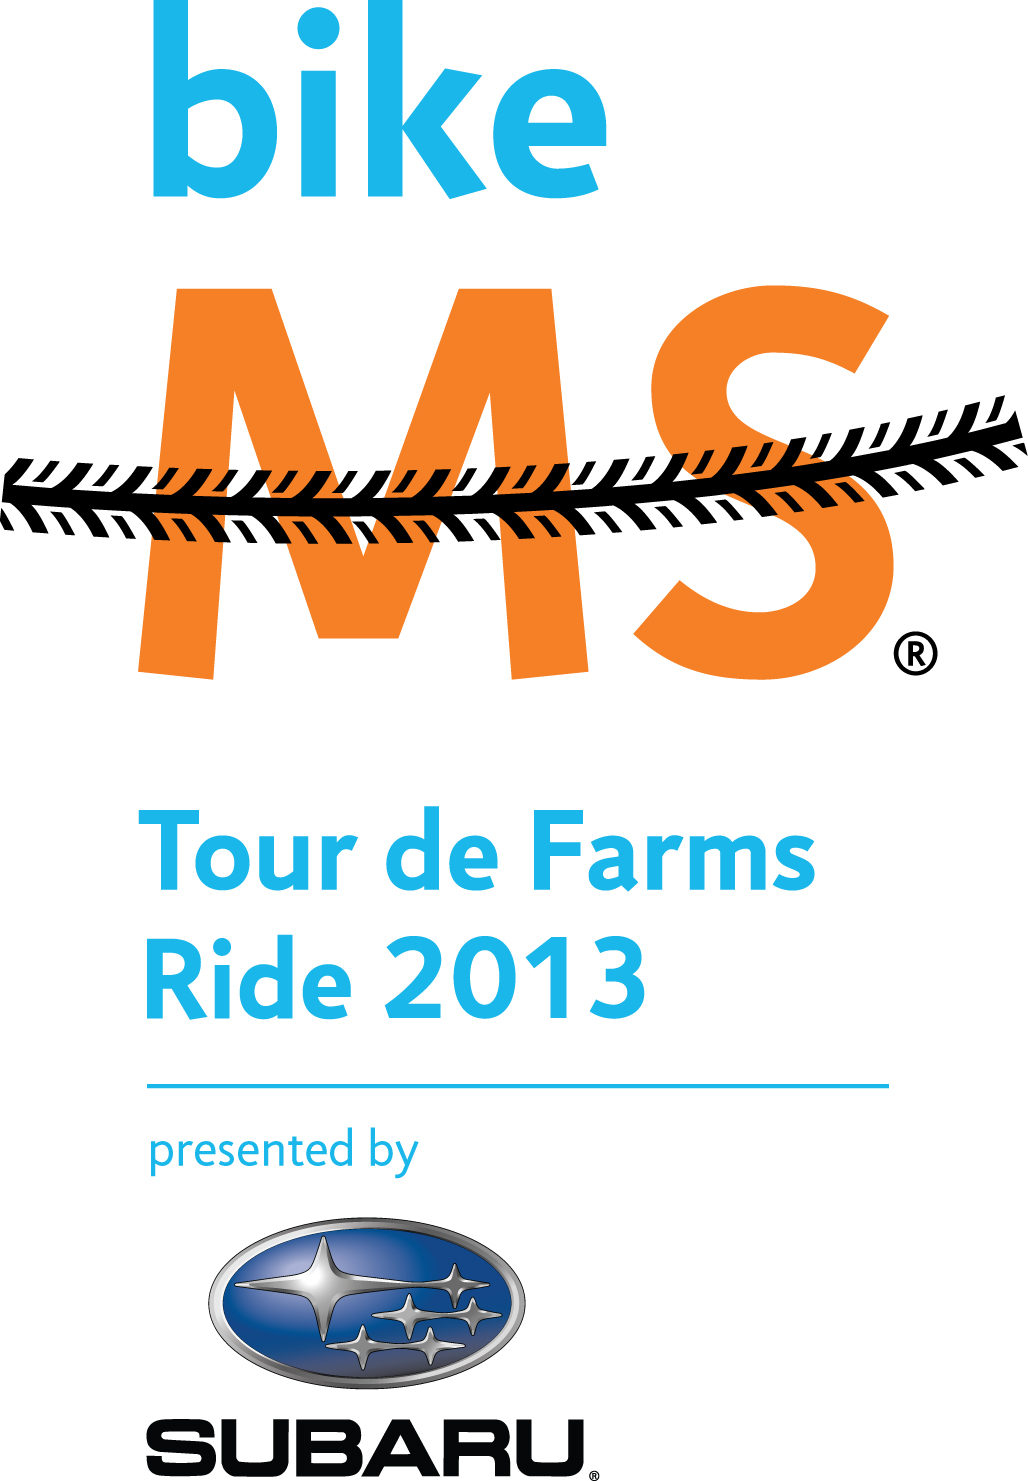 Bike MS 2013Logo.jpg